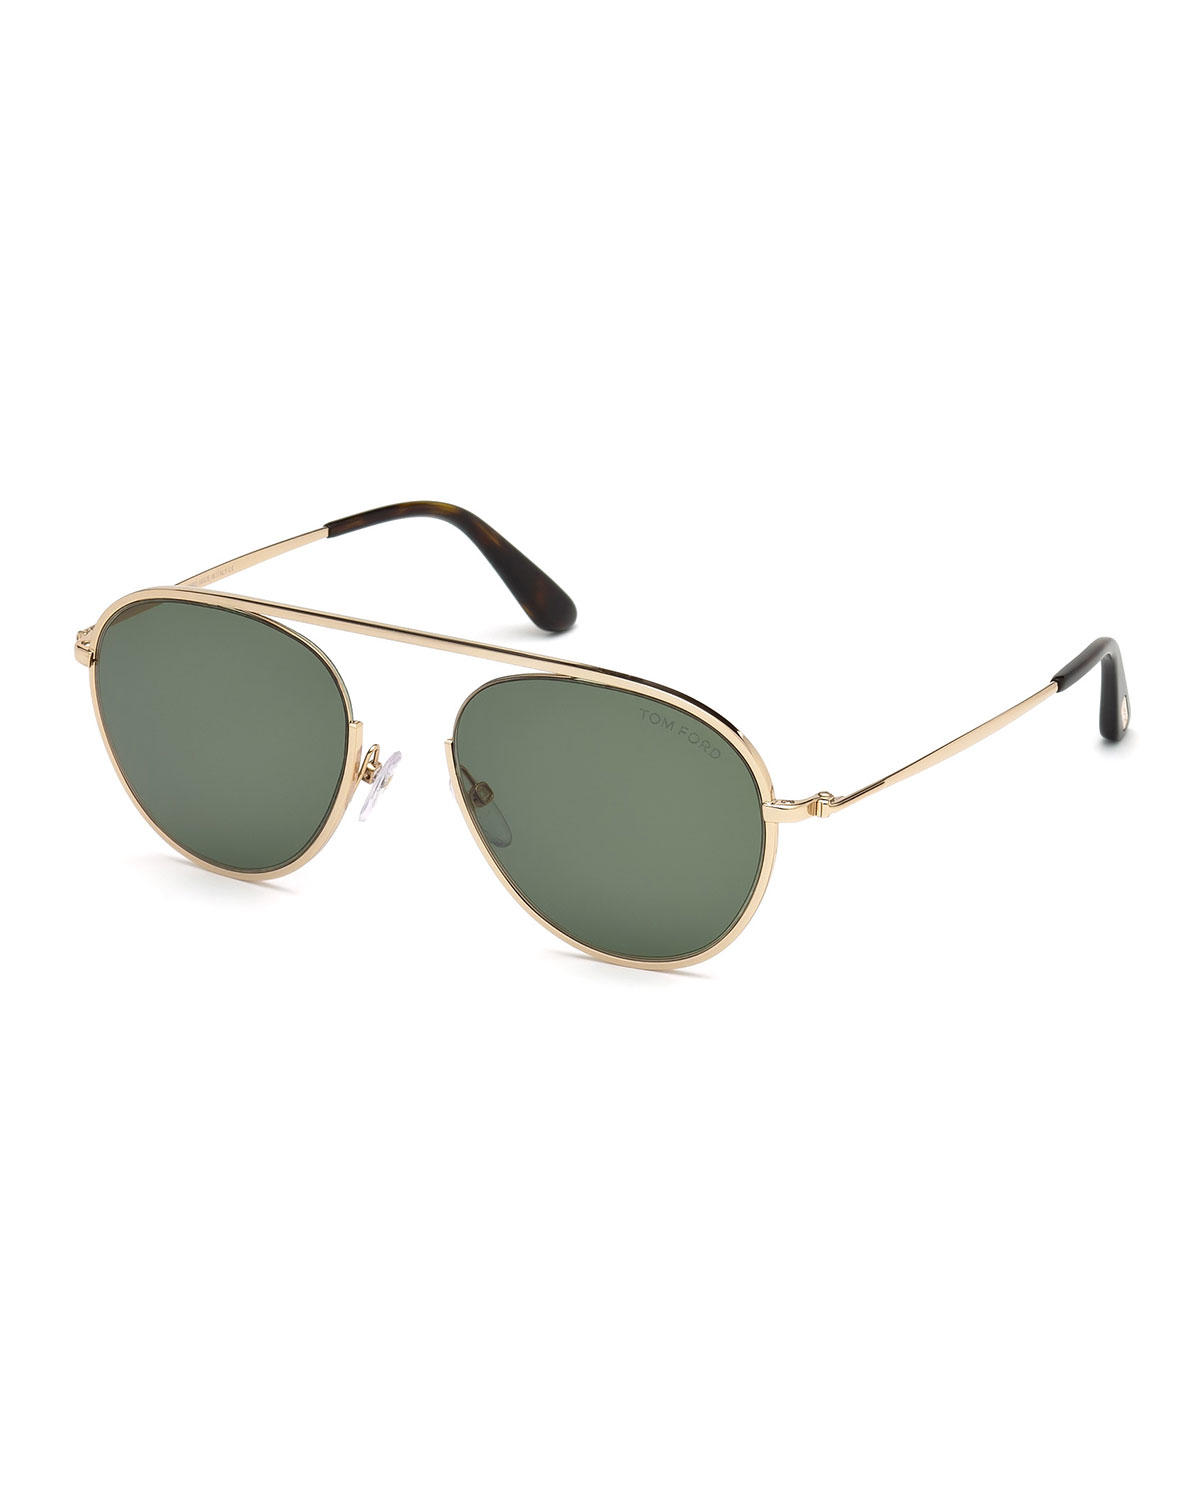 598d6a4a0e9c TOM FORD Keith Men s Round Brow-Bar Metal Sunglasses